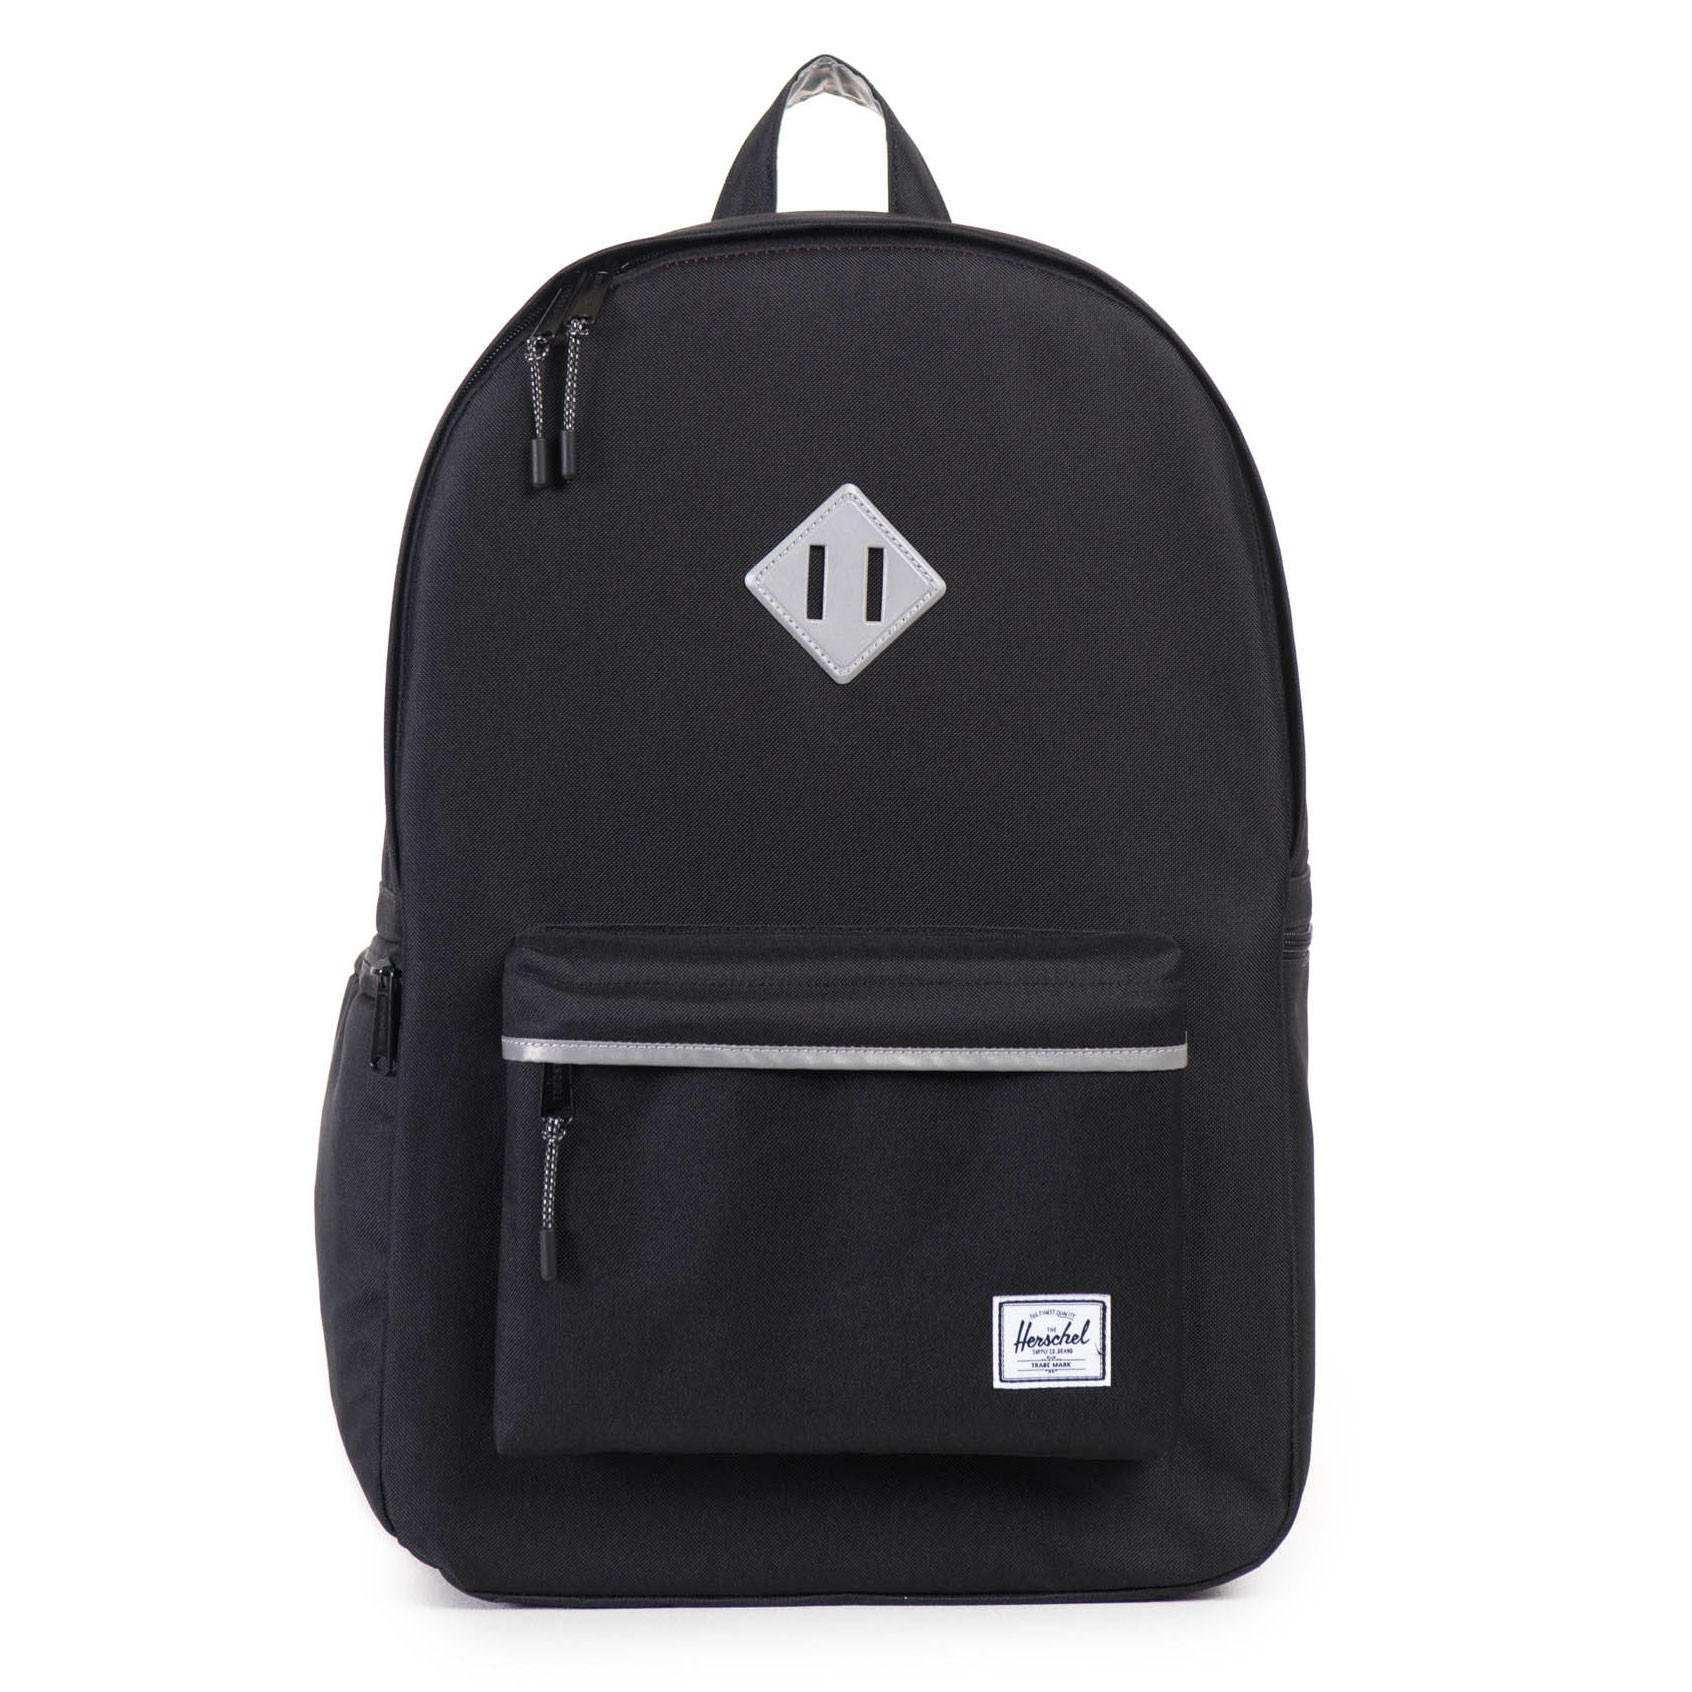 Herschel Supply Co.  Heritage Backpack Plus - Black   3M Rubber 3d603cffac31a